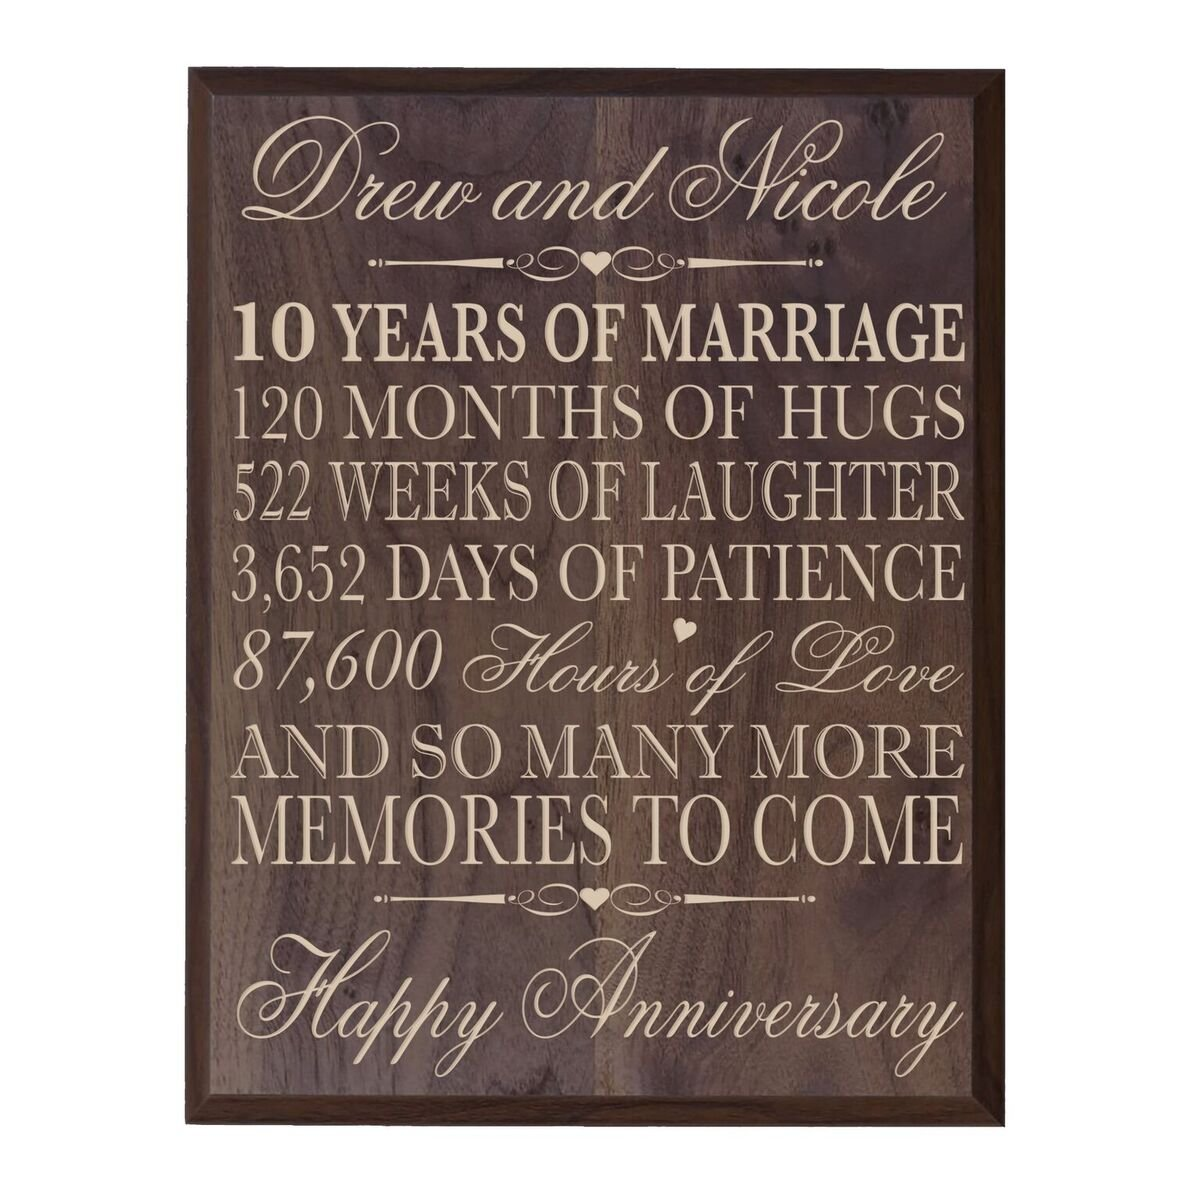 LifeSong Milestones Personalized 10th Wedding Anniversary Wall Plaque Gifts for Couple, Custom 10th for Her, 12 Inches Wide X 15 Inches High Wall Plaque (Grand Walnut)